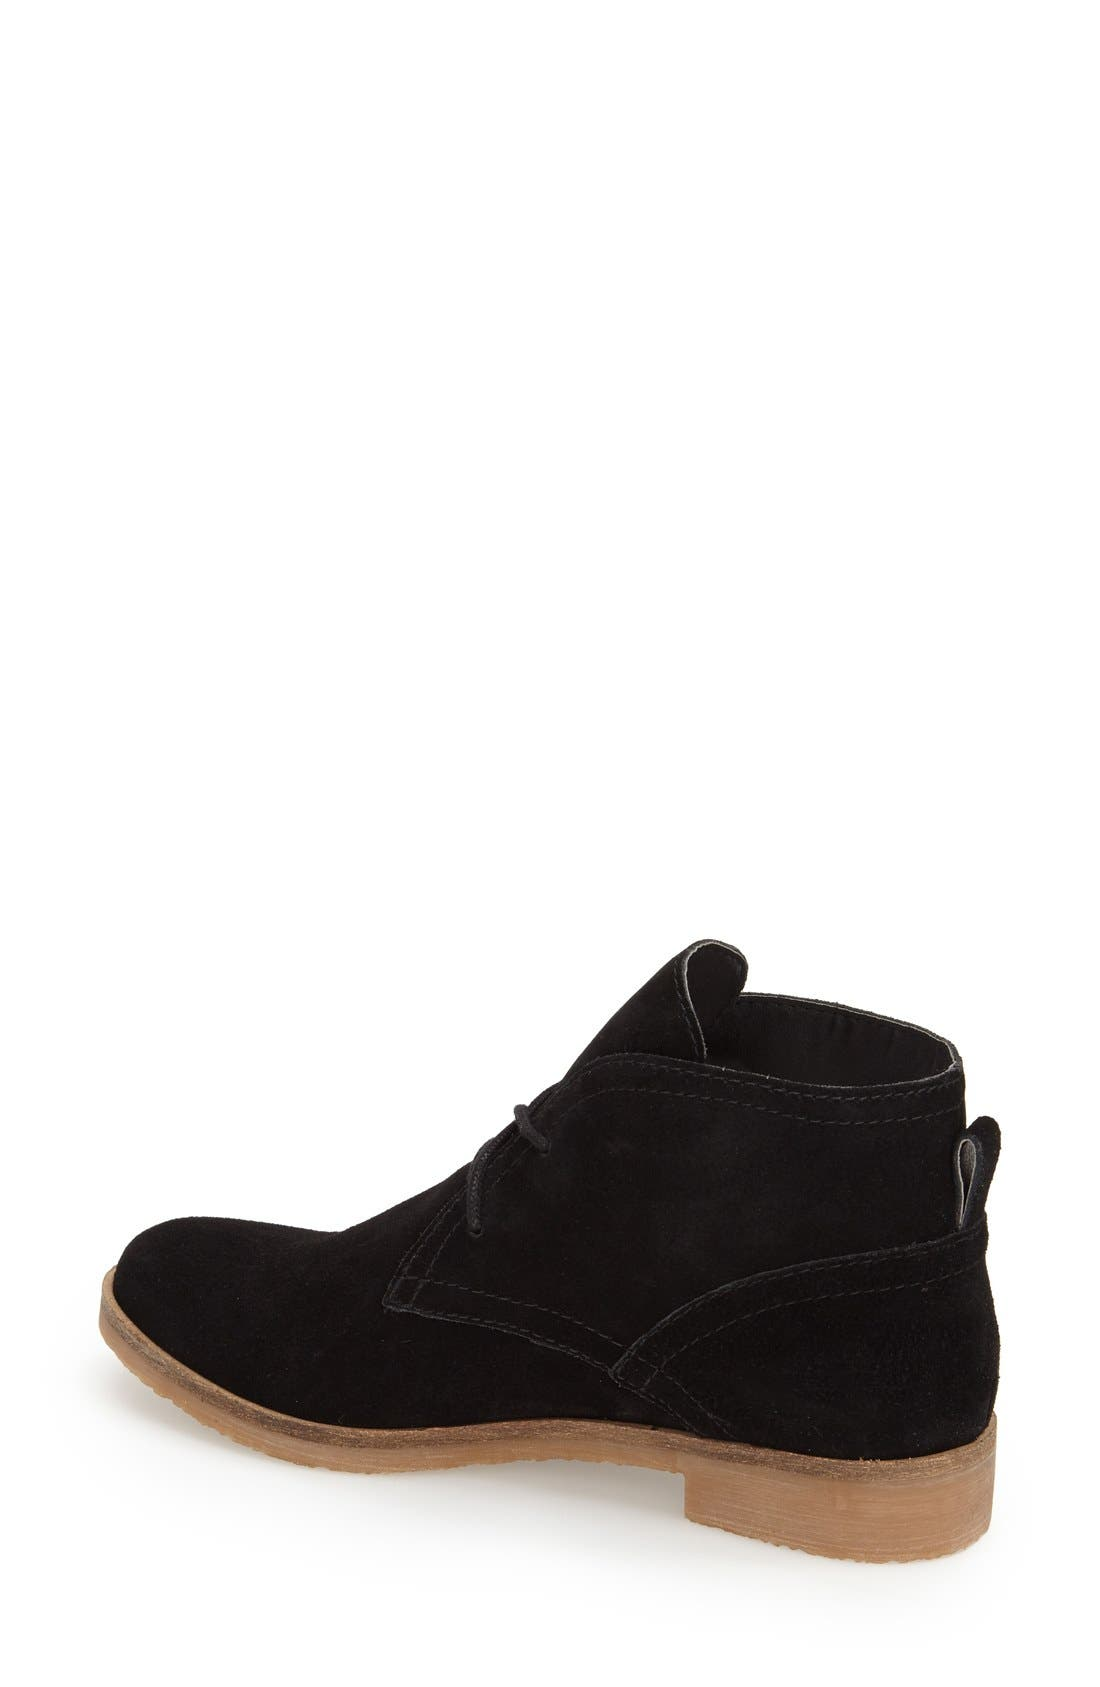 LuckyBrand'Garboh'Lace-UpBootie,                             Alternate thumbnail 2, color,                             001